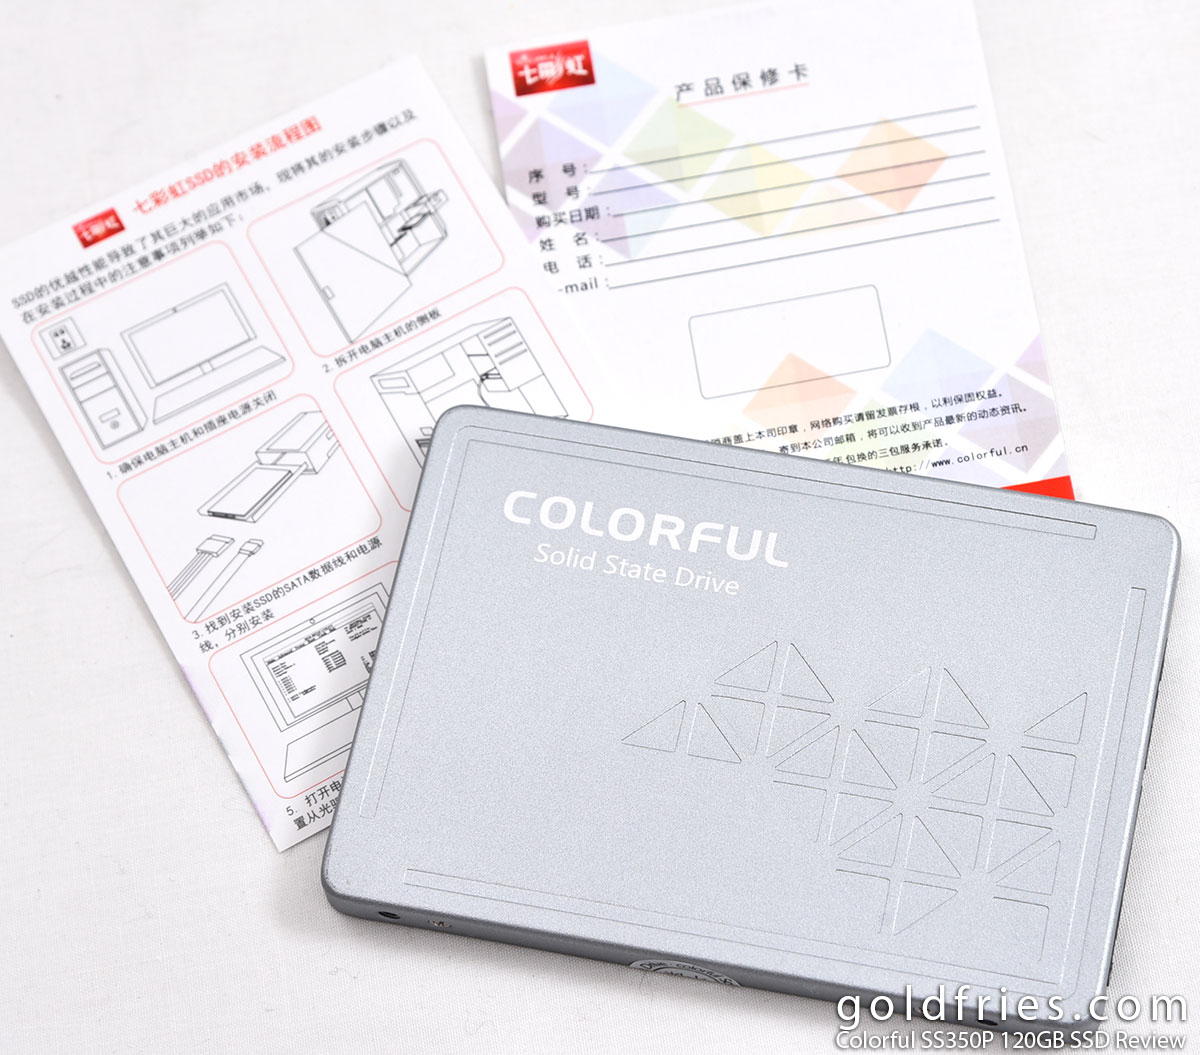 Colorful SS350P 120GB SSD Review